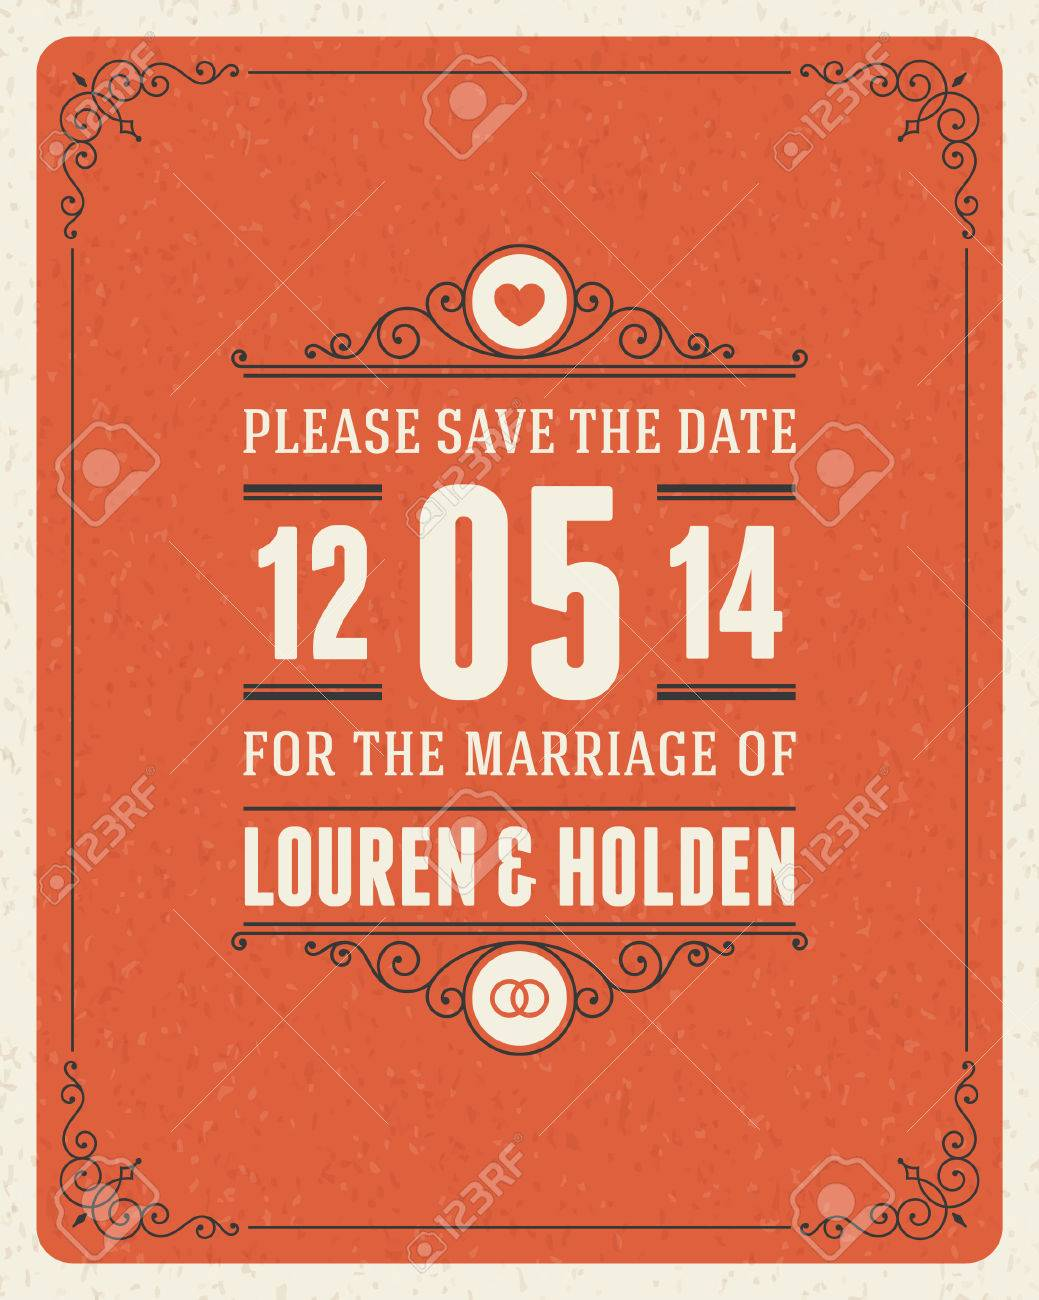 Wedding Invitation Card Template Vintage Background Retro Flourish ...